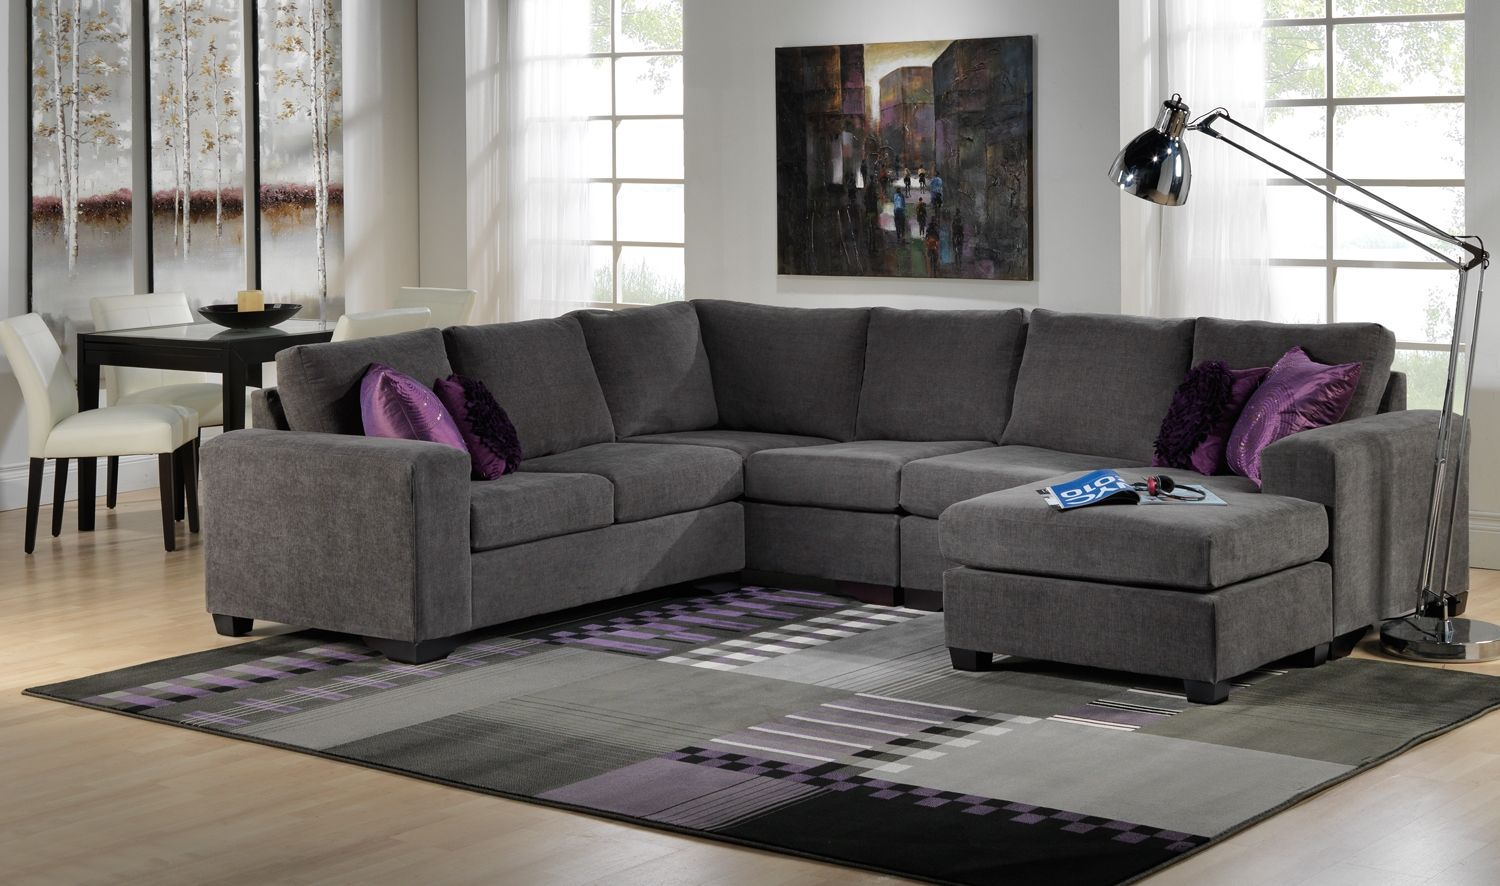 leon s sofas sofa cover blankets danielle upholstery collection 39s gt 3 pc sectional